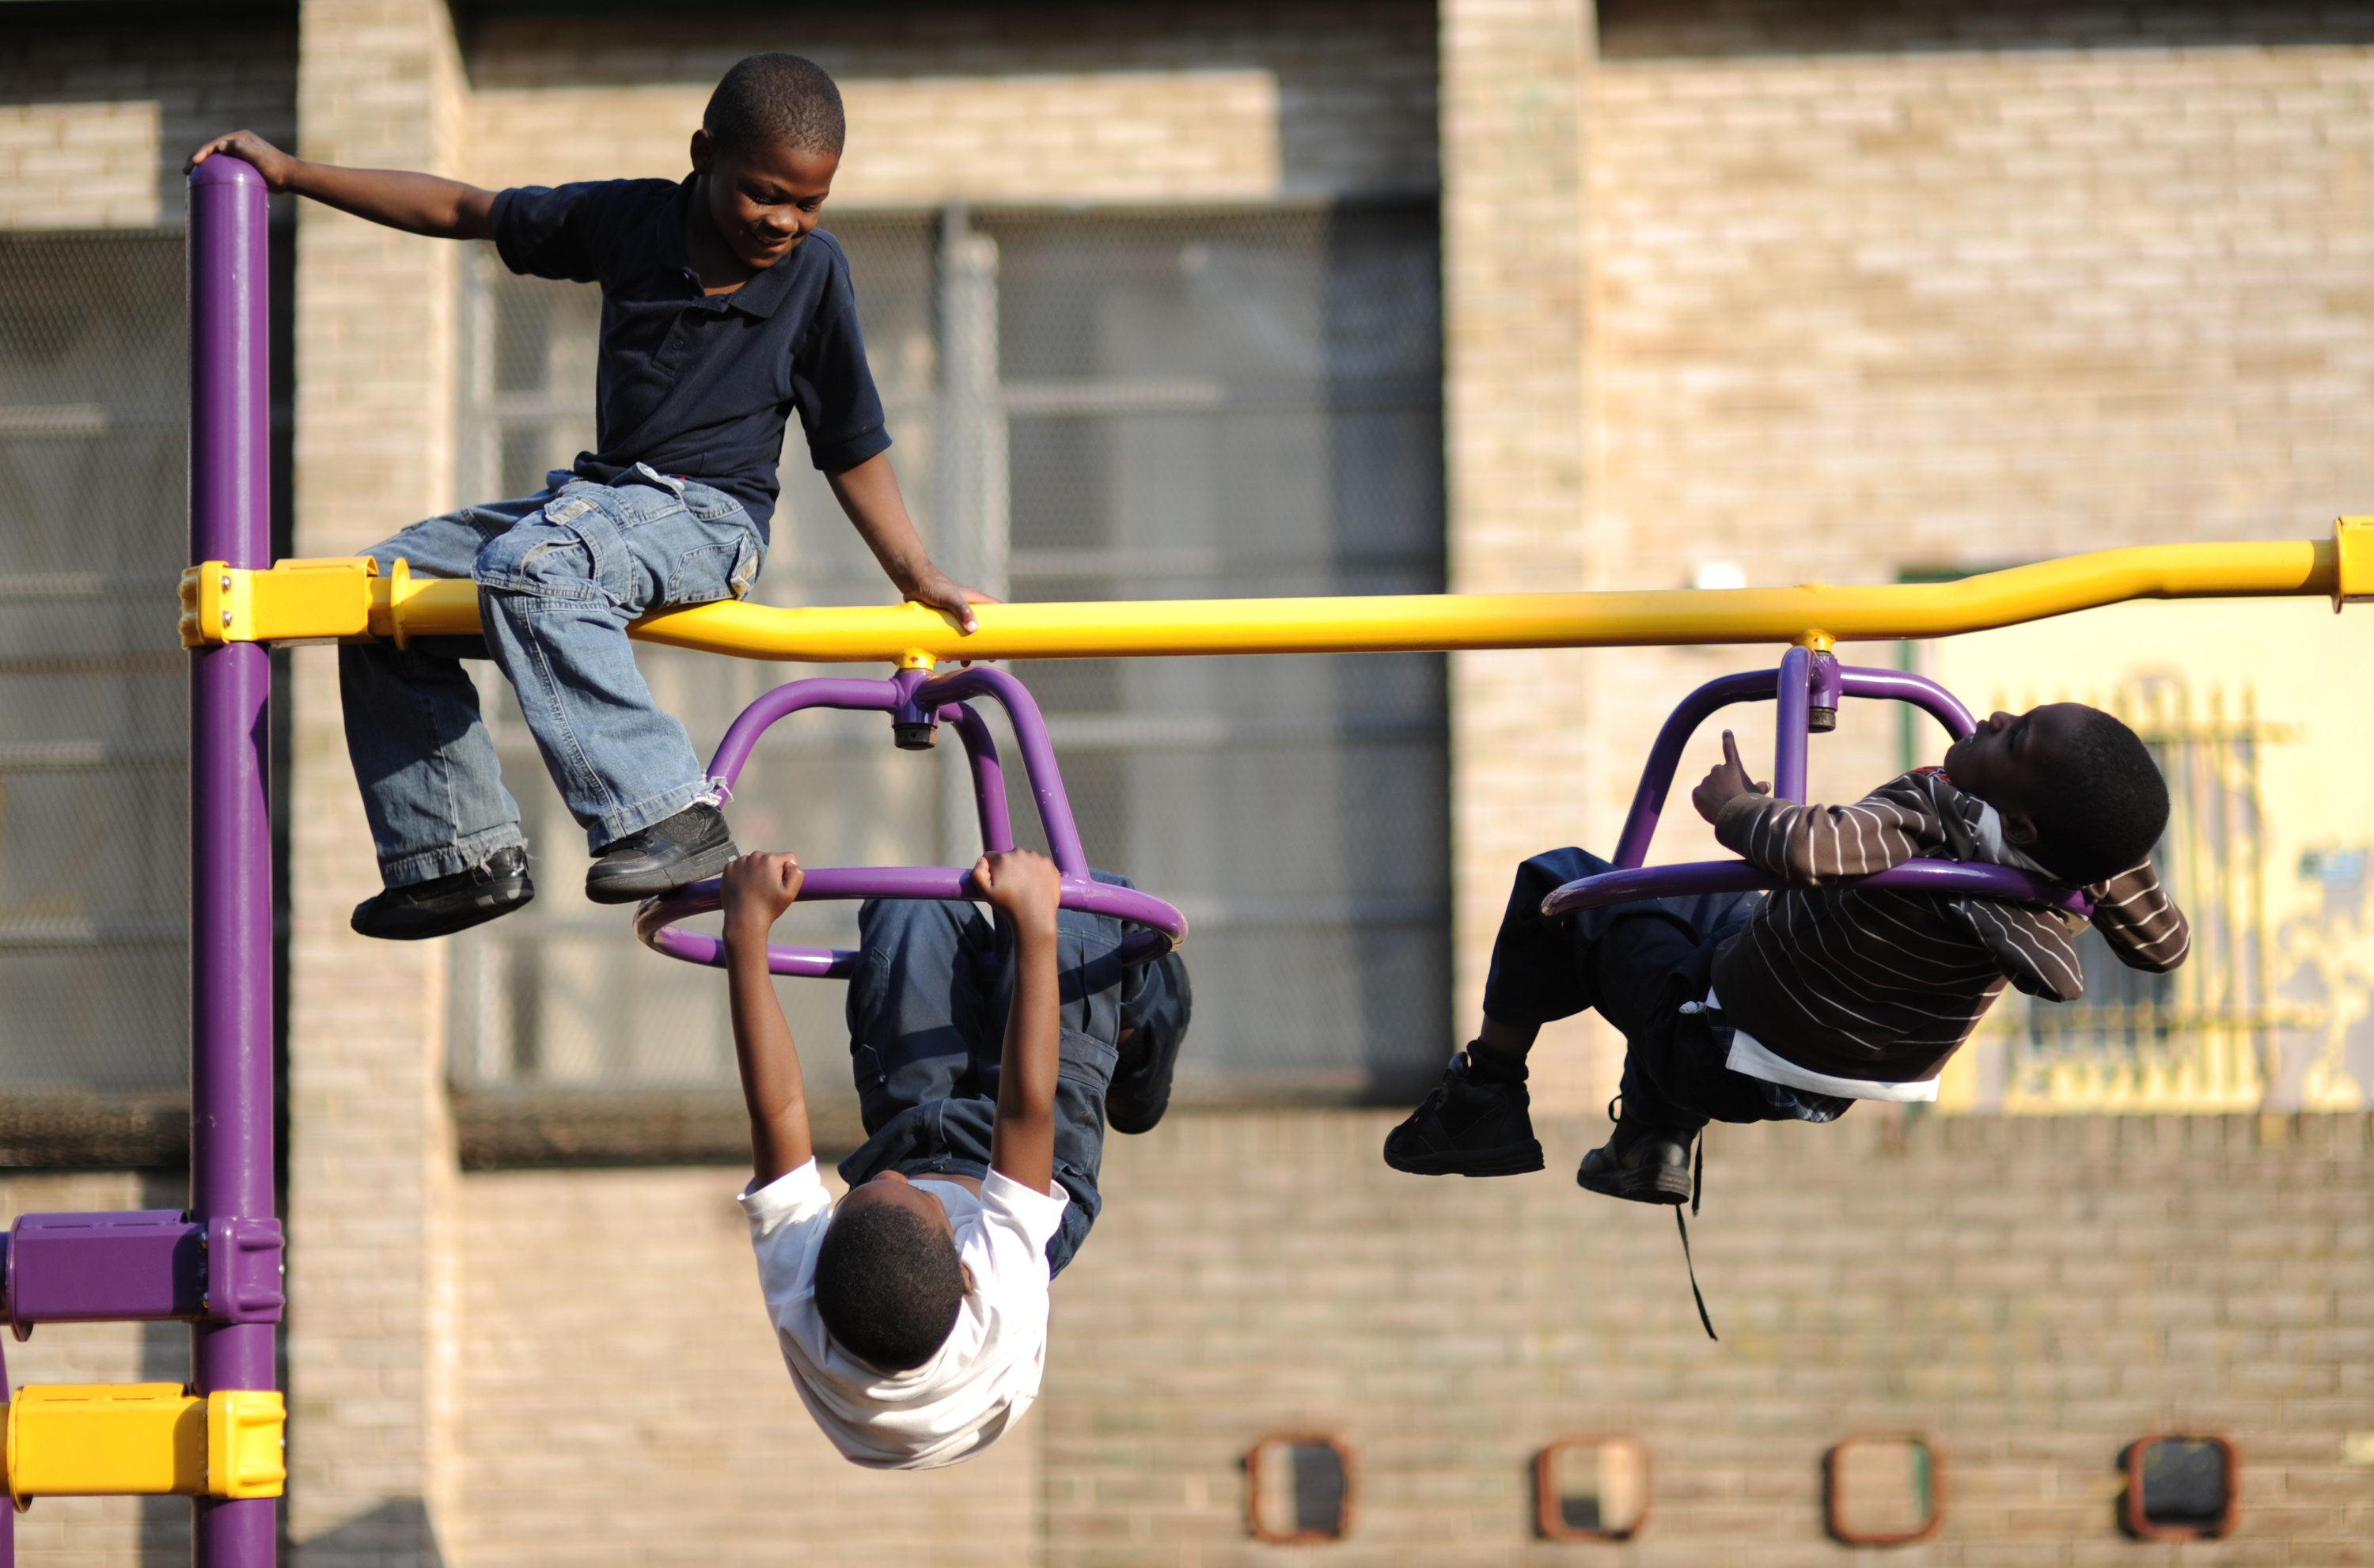 Children play on spinning monkey bars at a park